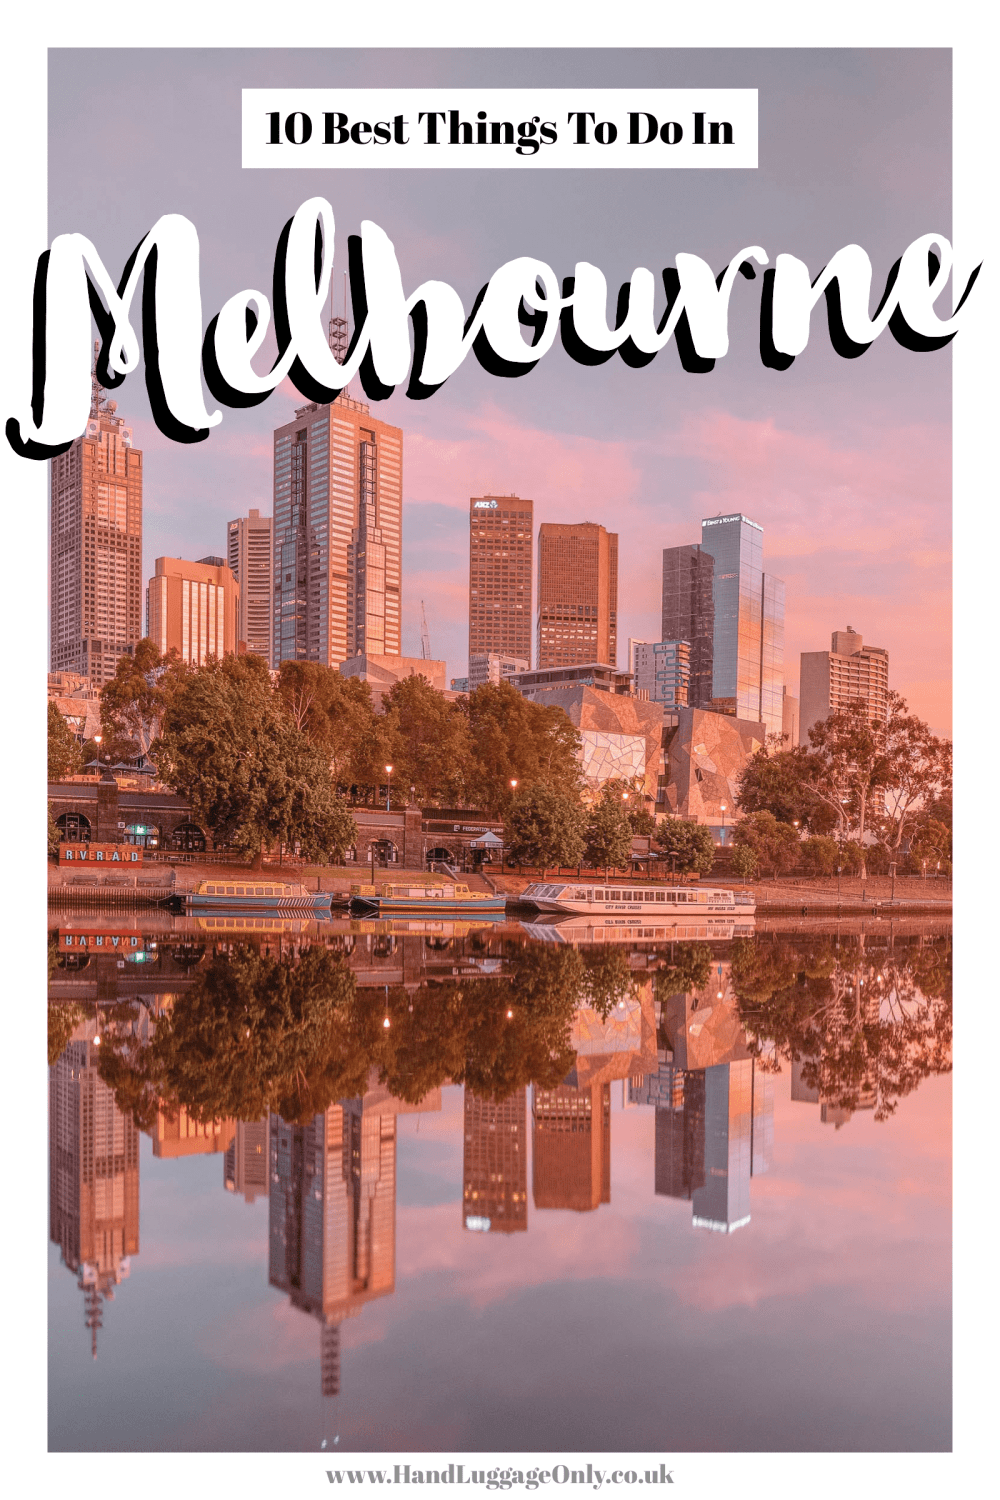 Best Things To Do In Melbourne (1)